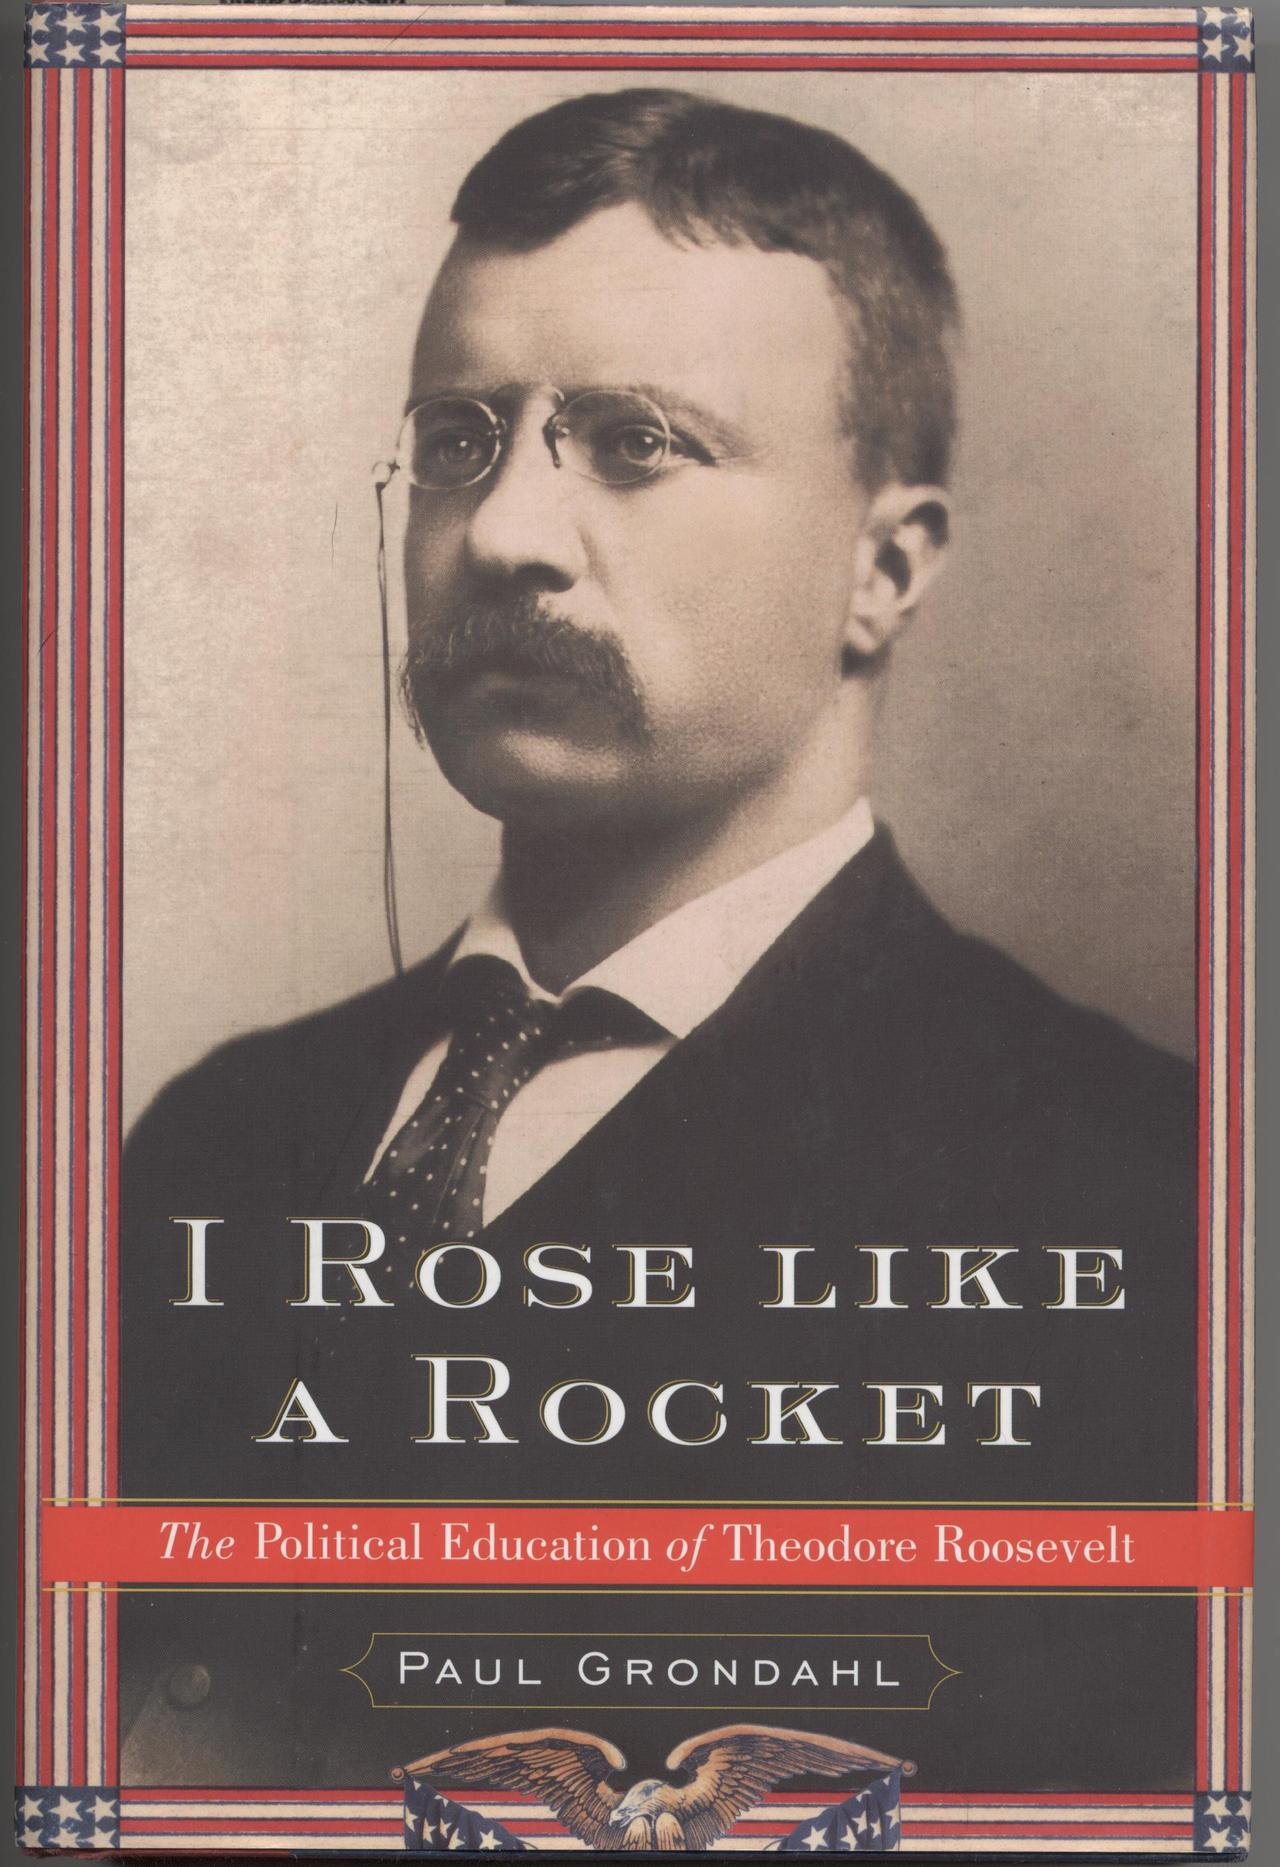 I rose like a rocket book cover